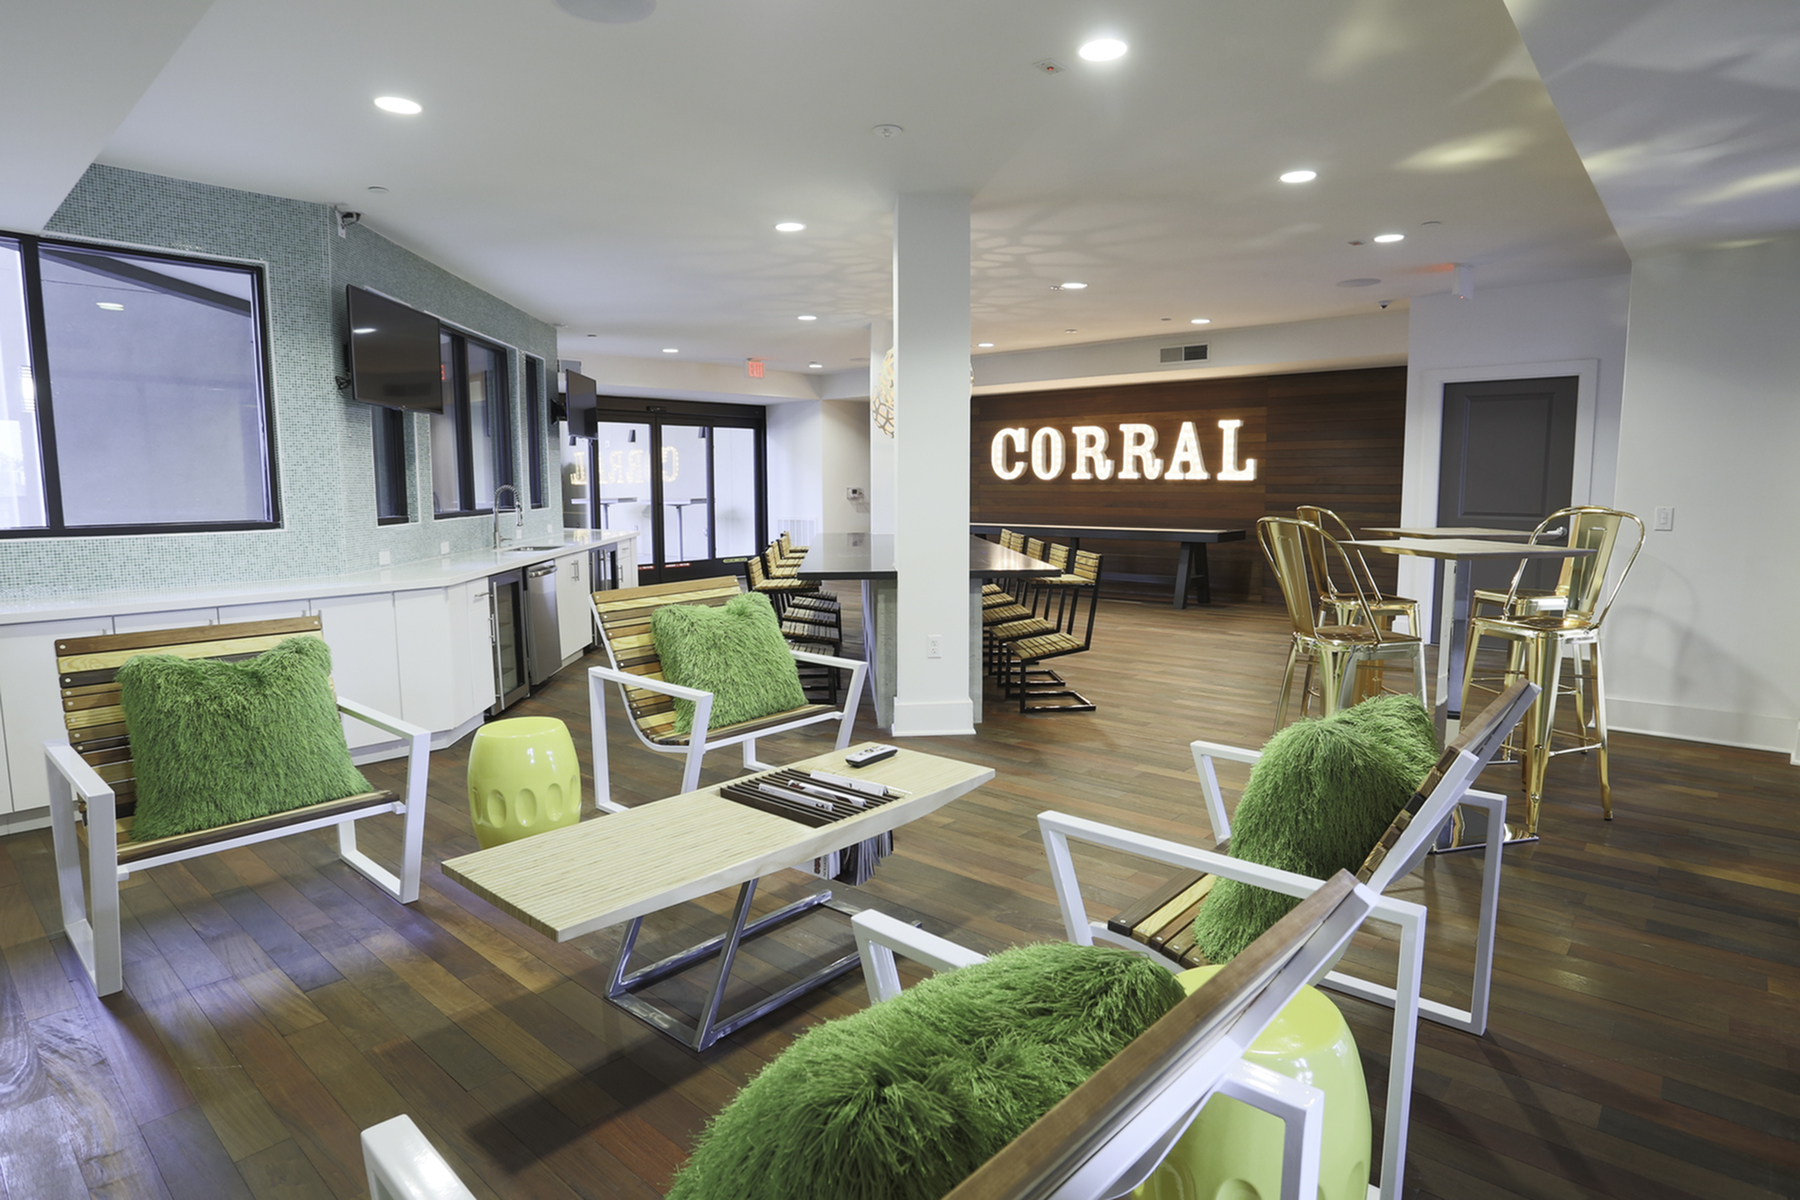 Image of Corral Lounge Pool House for The Stetson